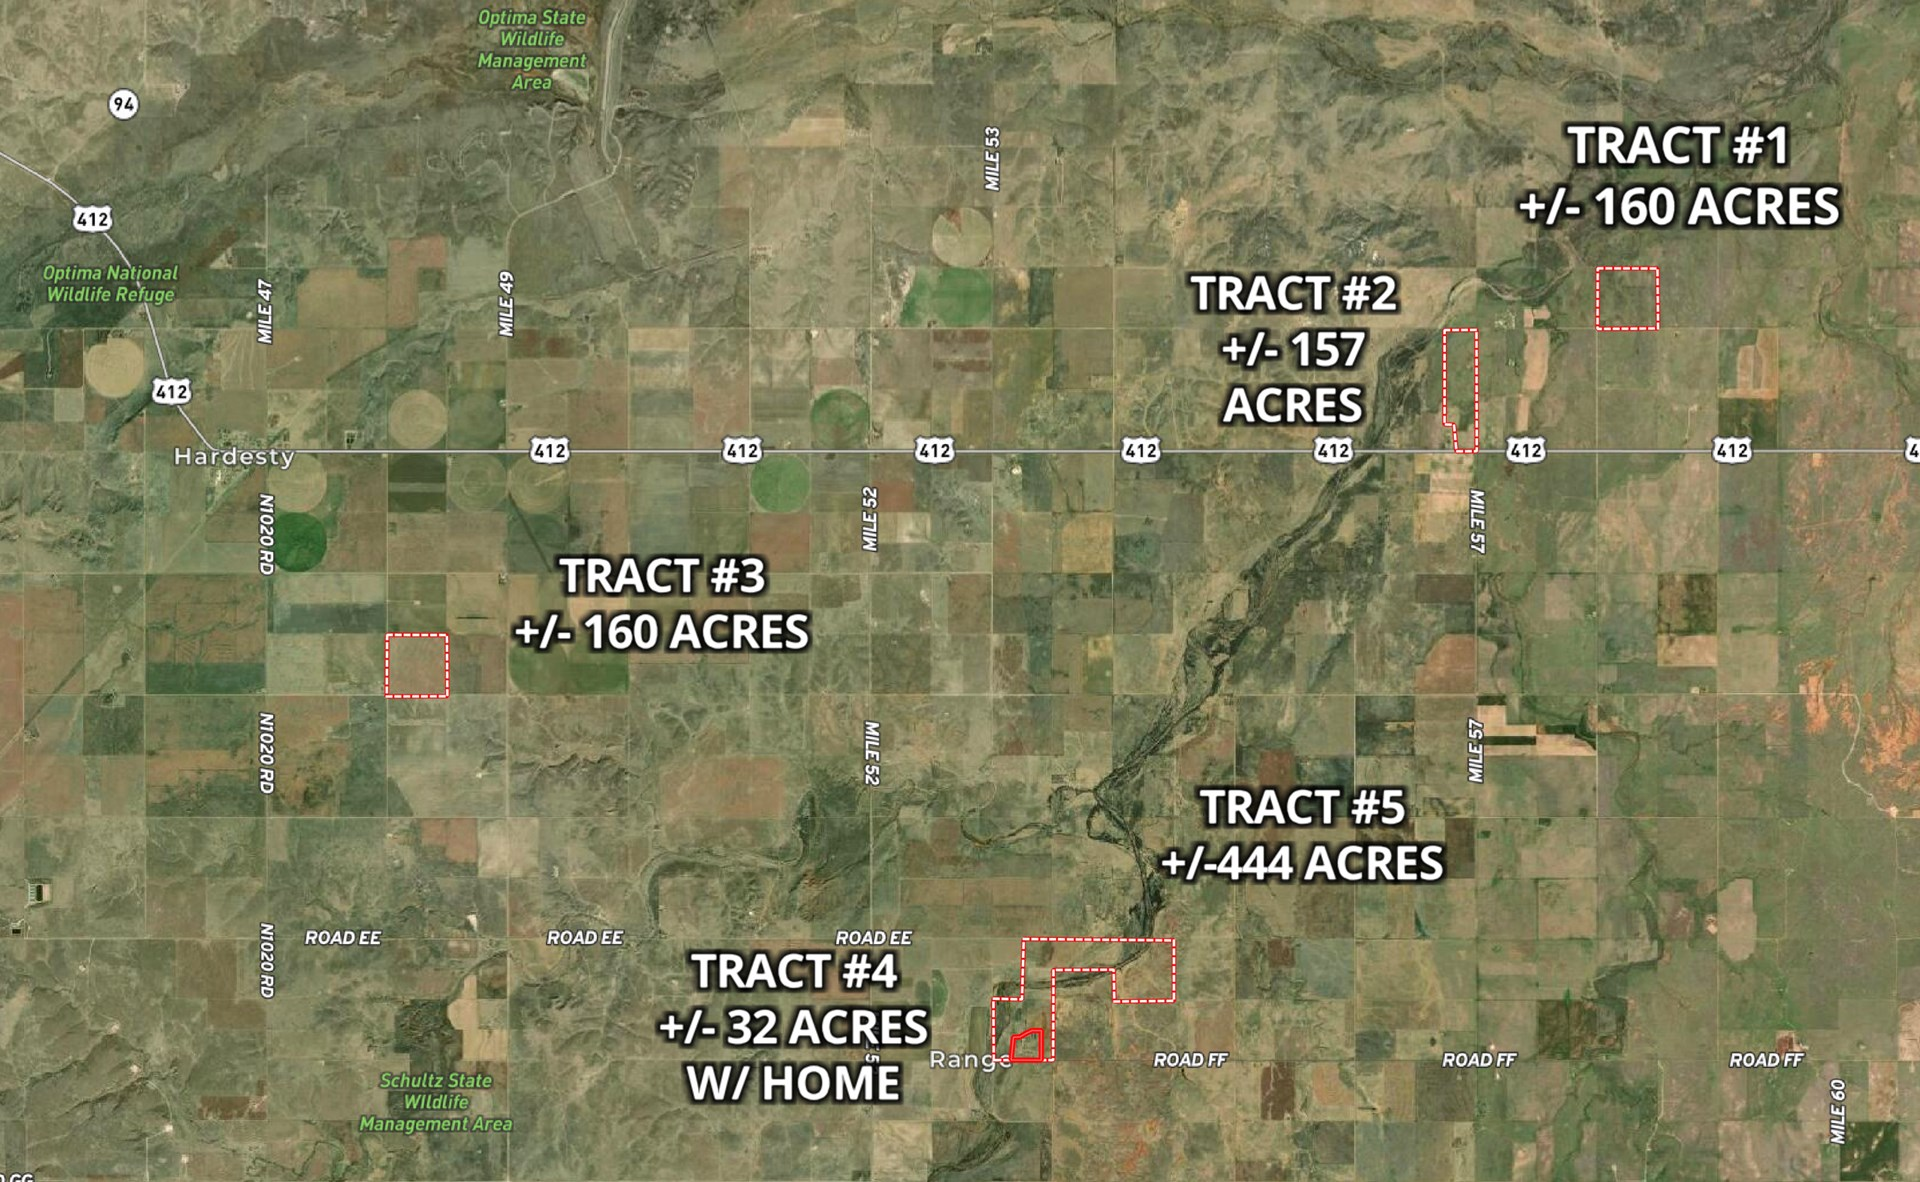 Texas County Farm, Ranch & Hunting Land for Sale